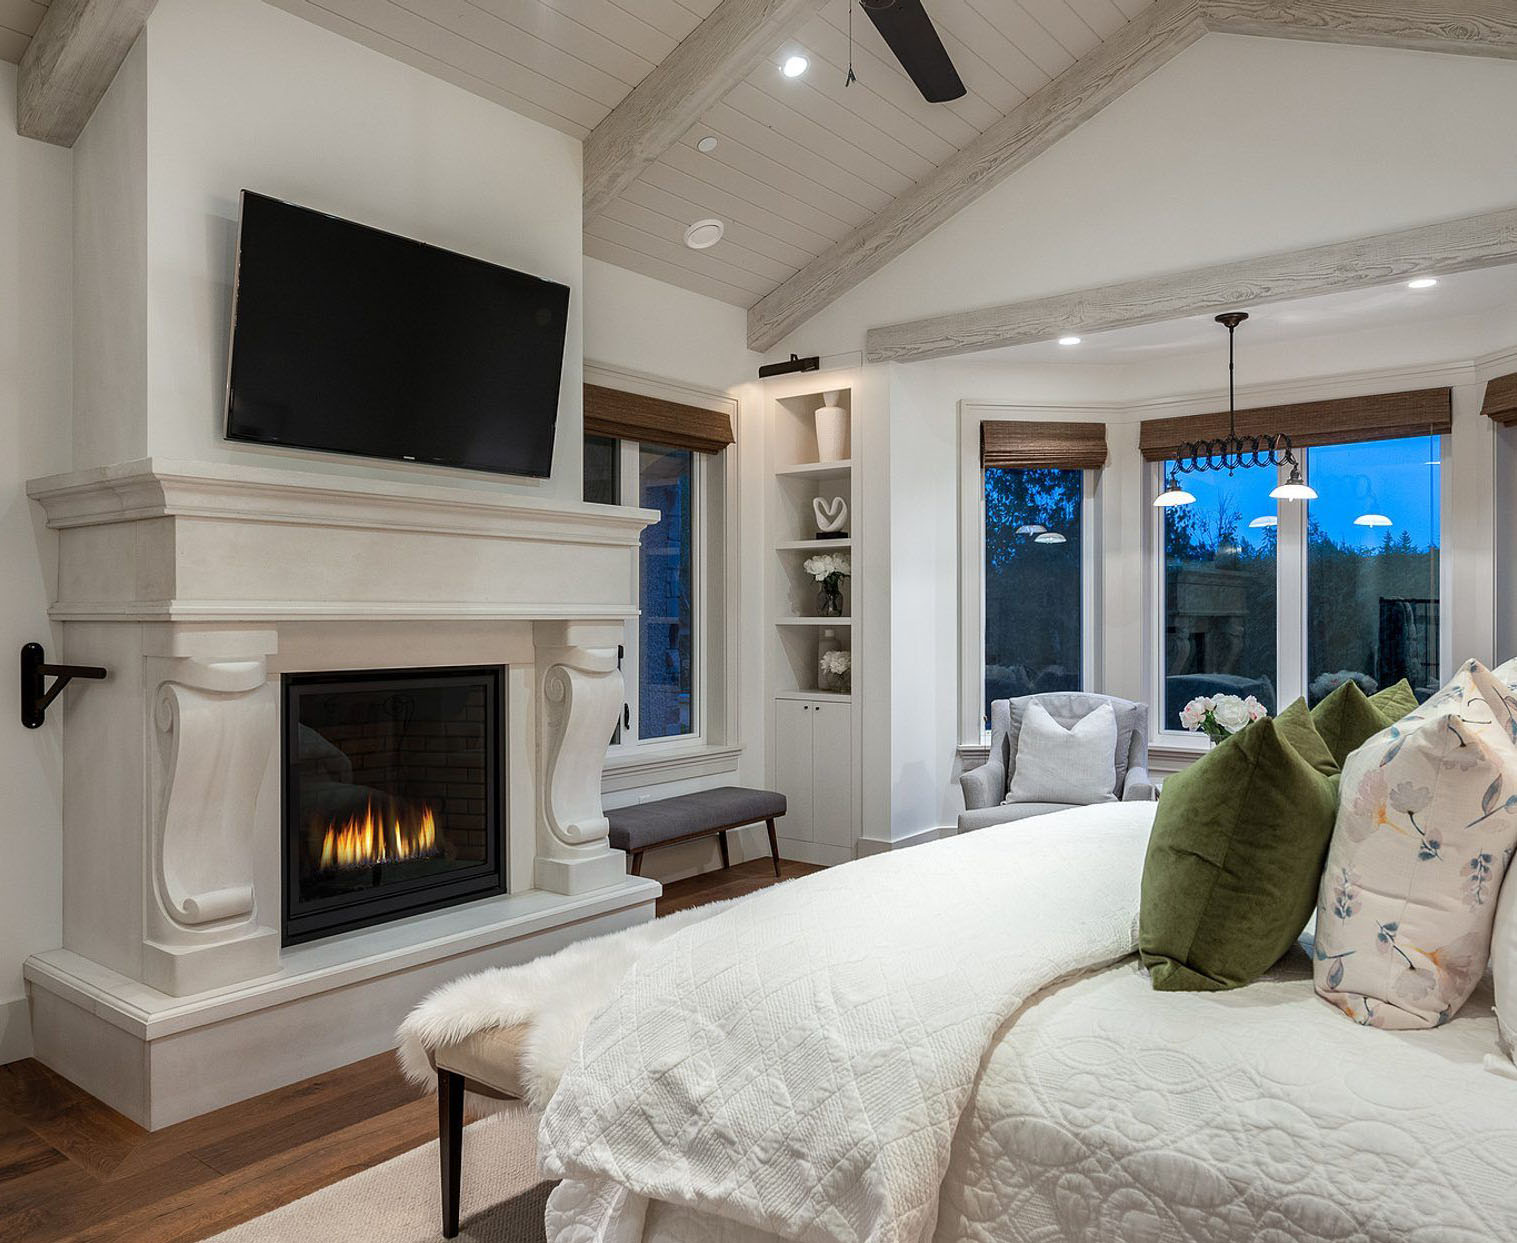 Master bedroom fireplace with a beautiful cast surround featuring scrolled legs, a hearth and mantle with wall mounted TV.